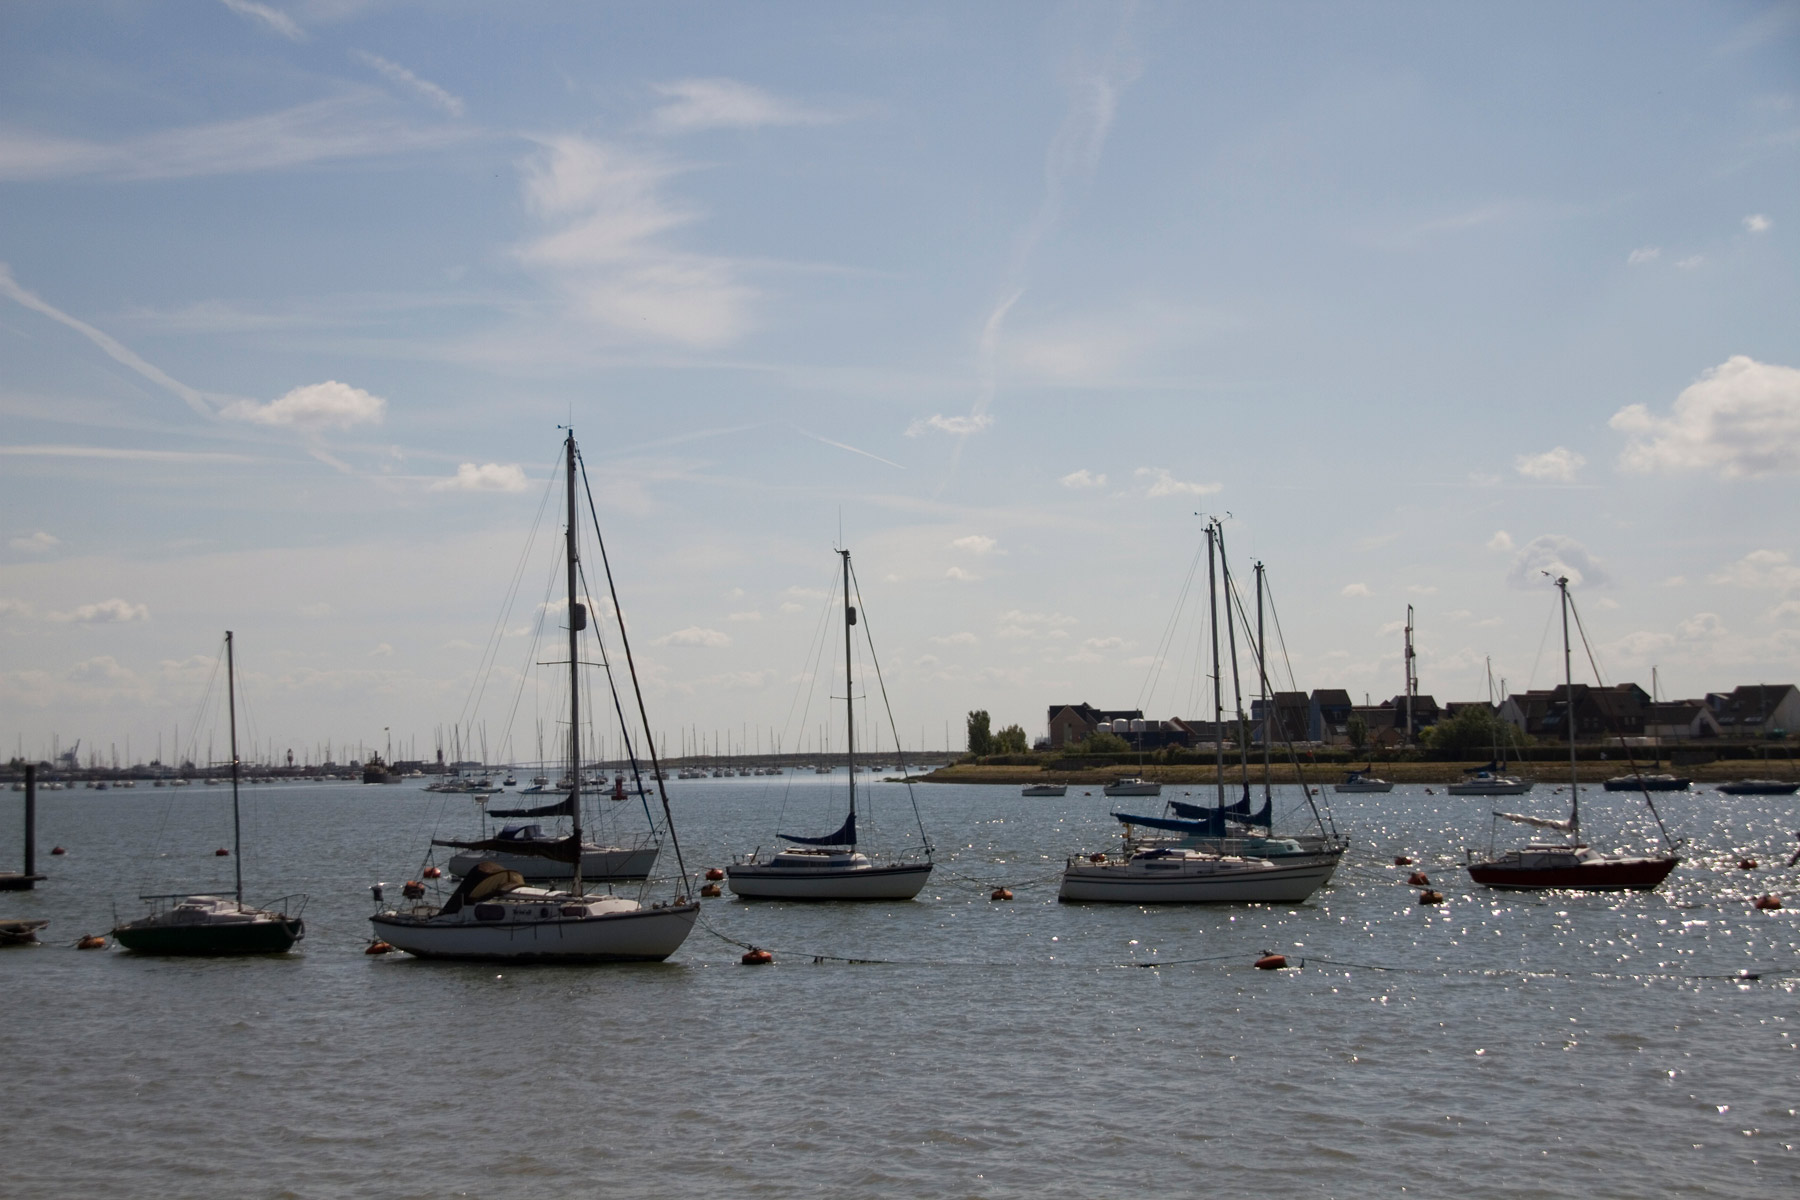 Boats in Upnor harbour